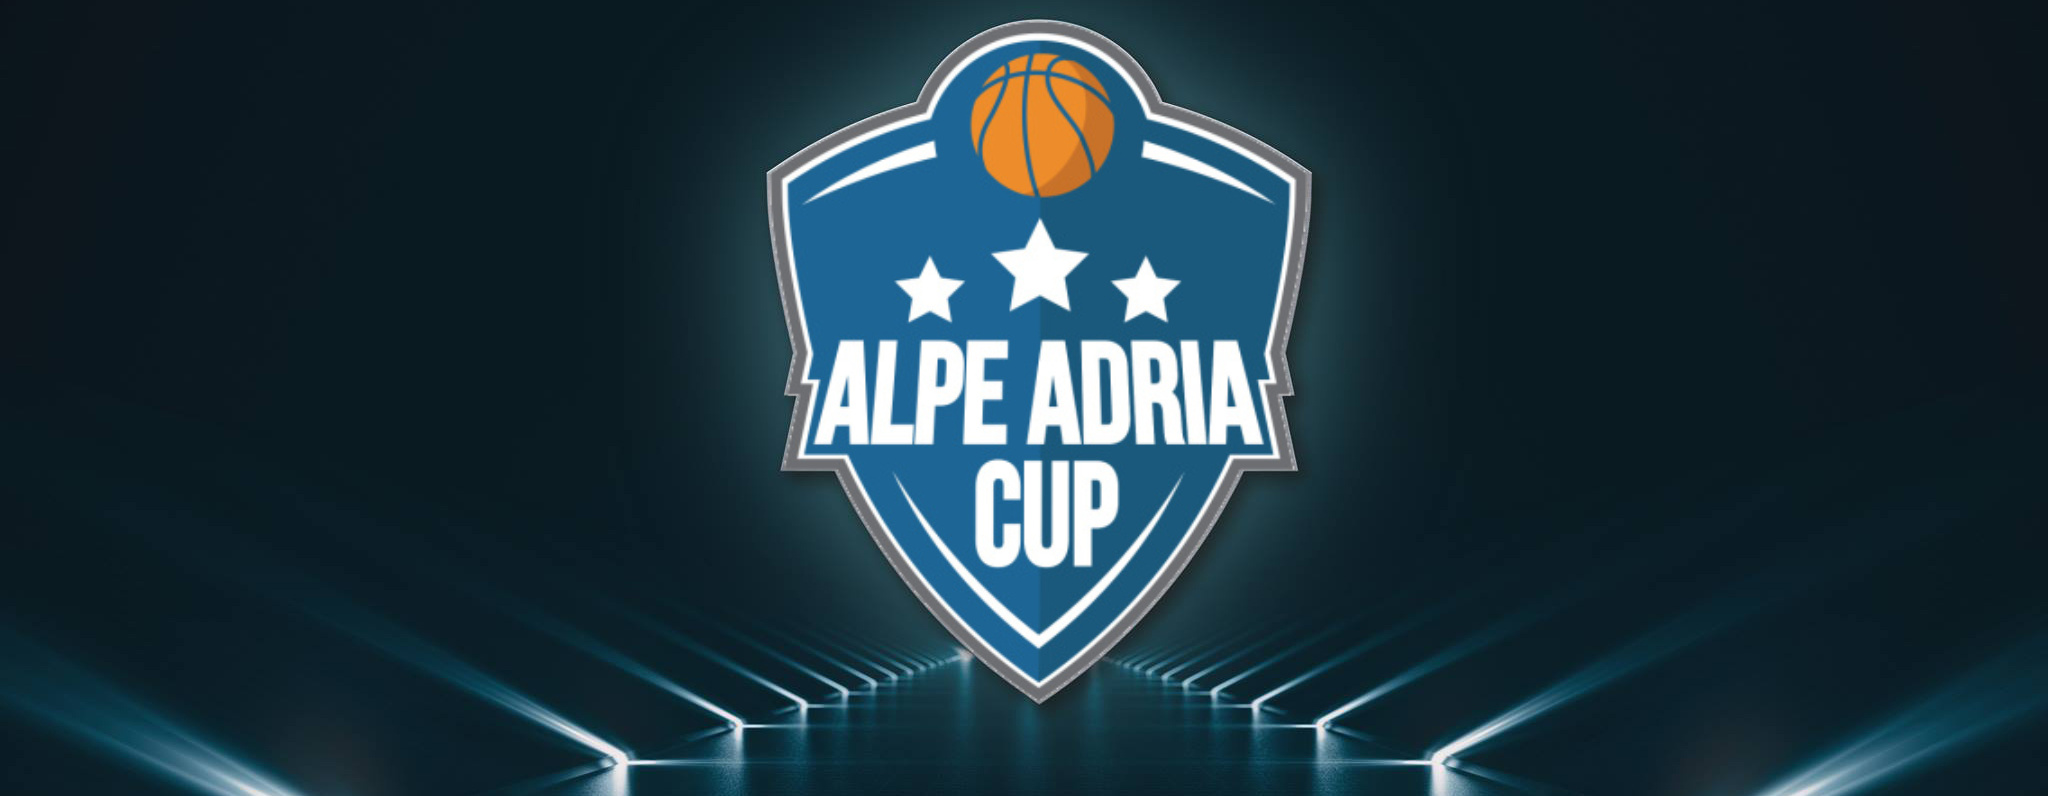 Alpe Adria Cup 2018/19